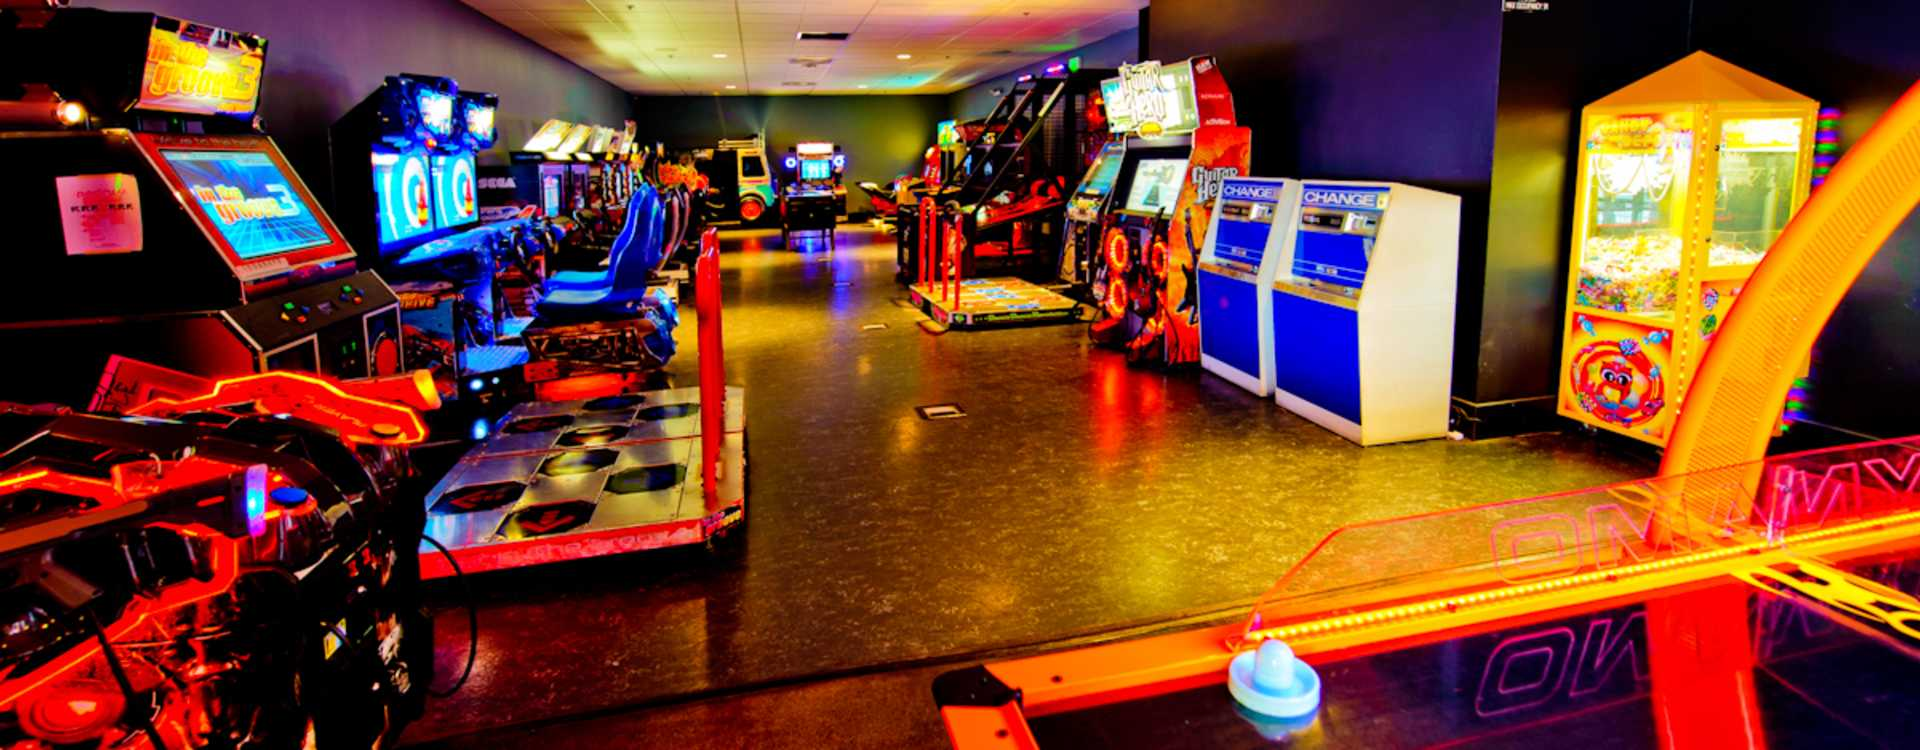 meeting-facility-ACME_Bowling__Billiards_and_Events_Meeting_Facility-9.jpg